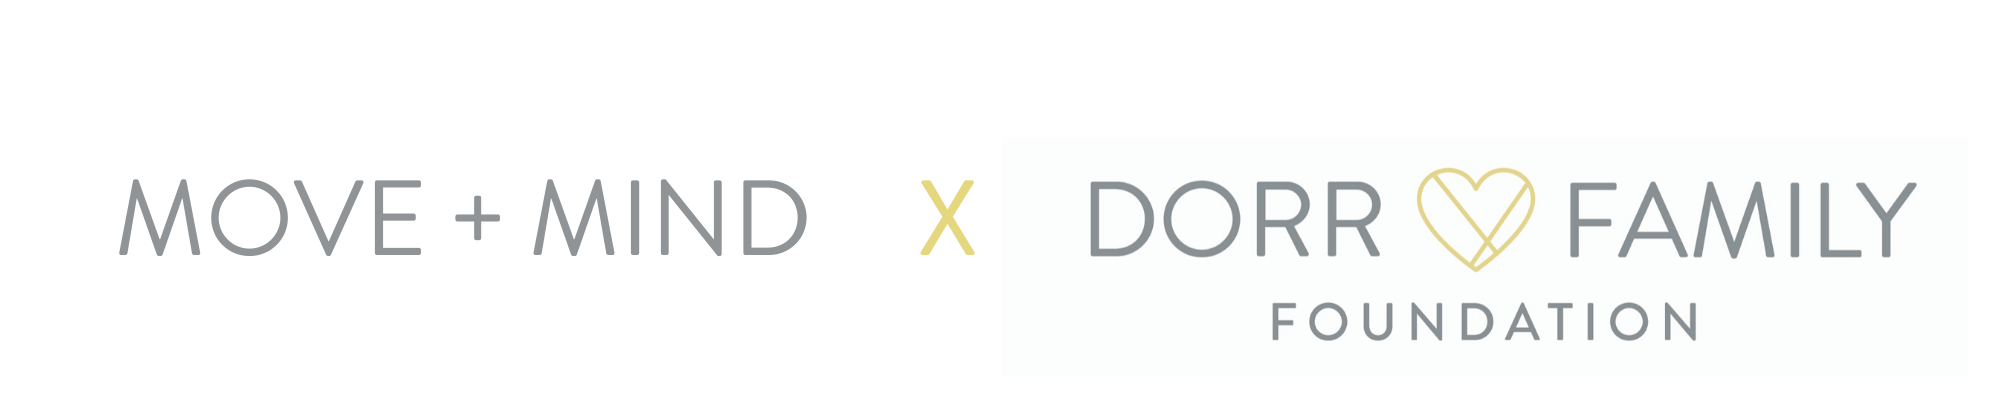 Move and Mind + Dorr Family Foundation